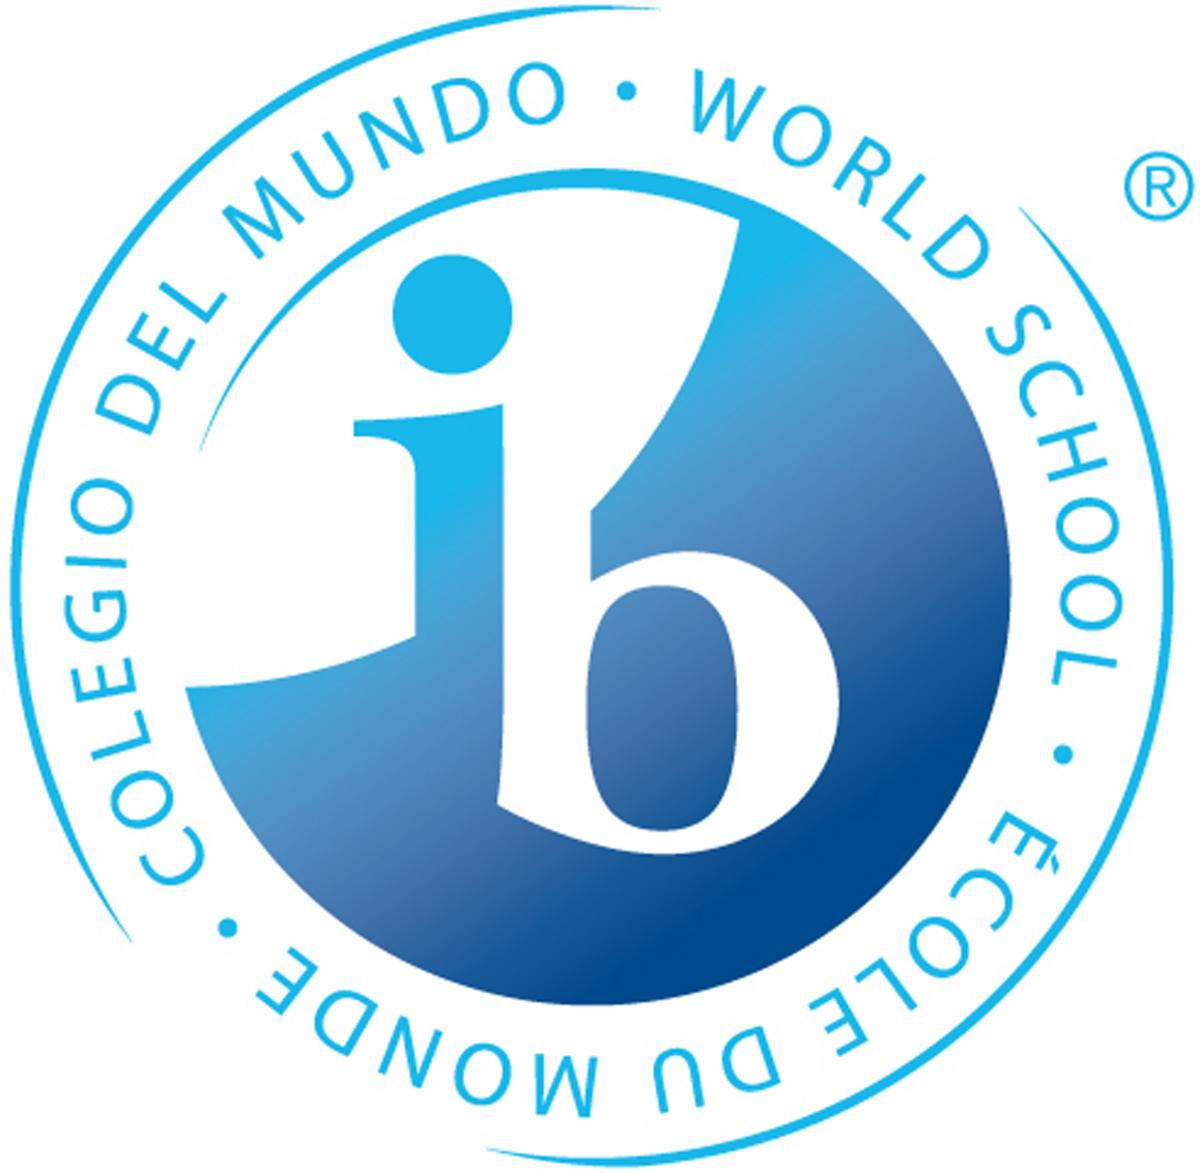 International Baccalaureate Diploma Programme (Program međunarodne mature)